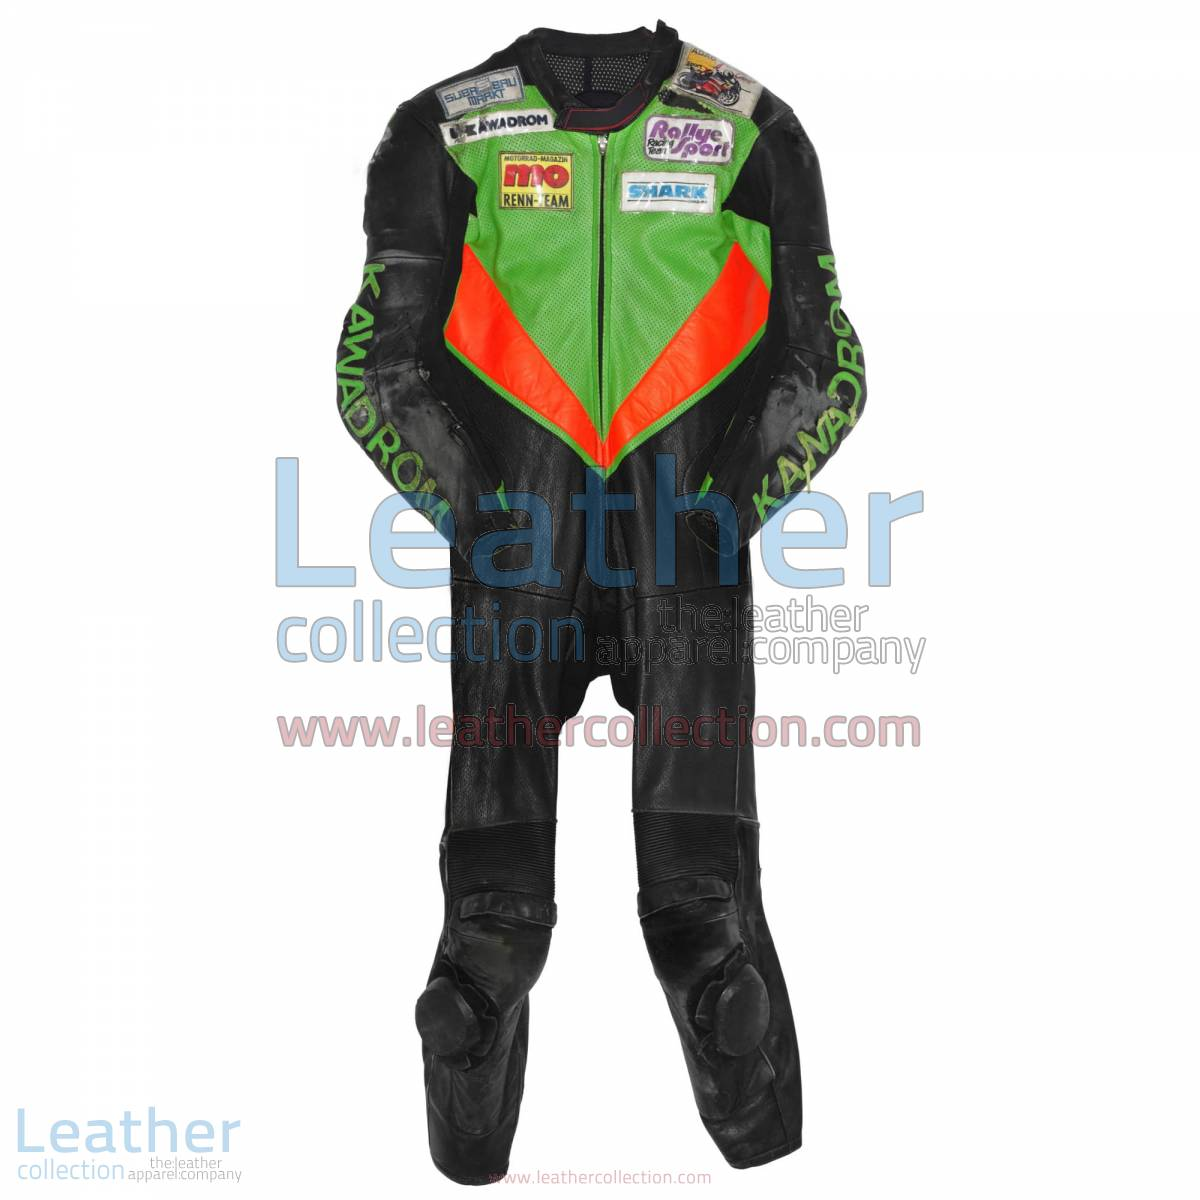 Christian Treutlein IDM 1997 Motorcycle Suit | motorcycle suit